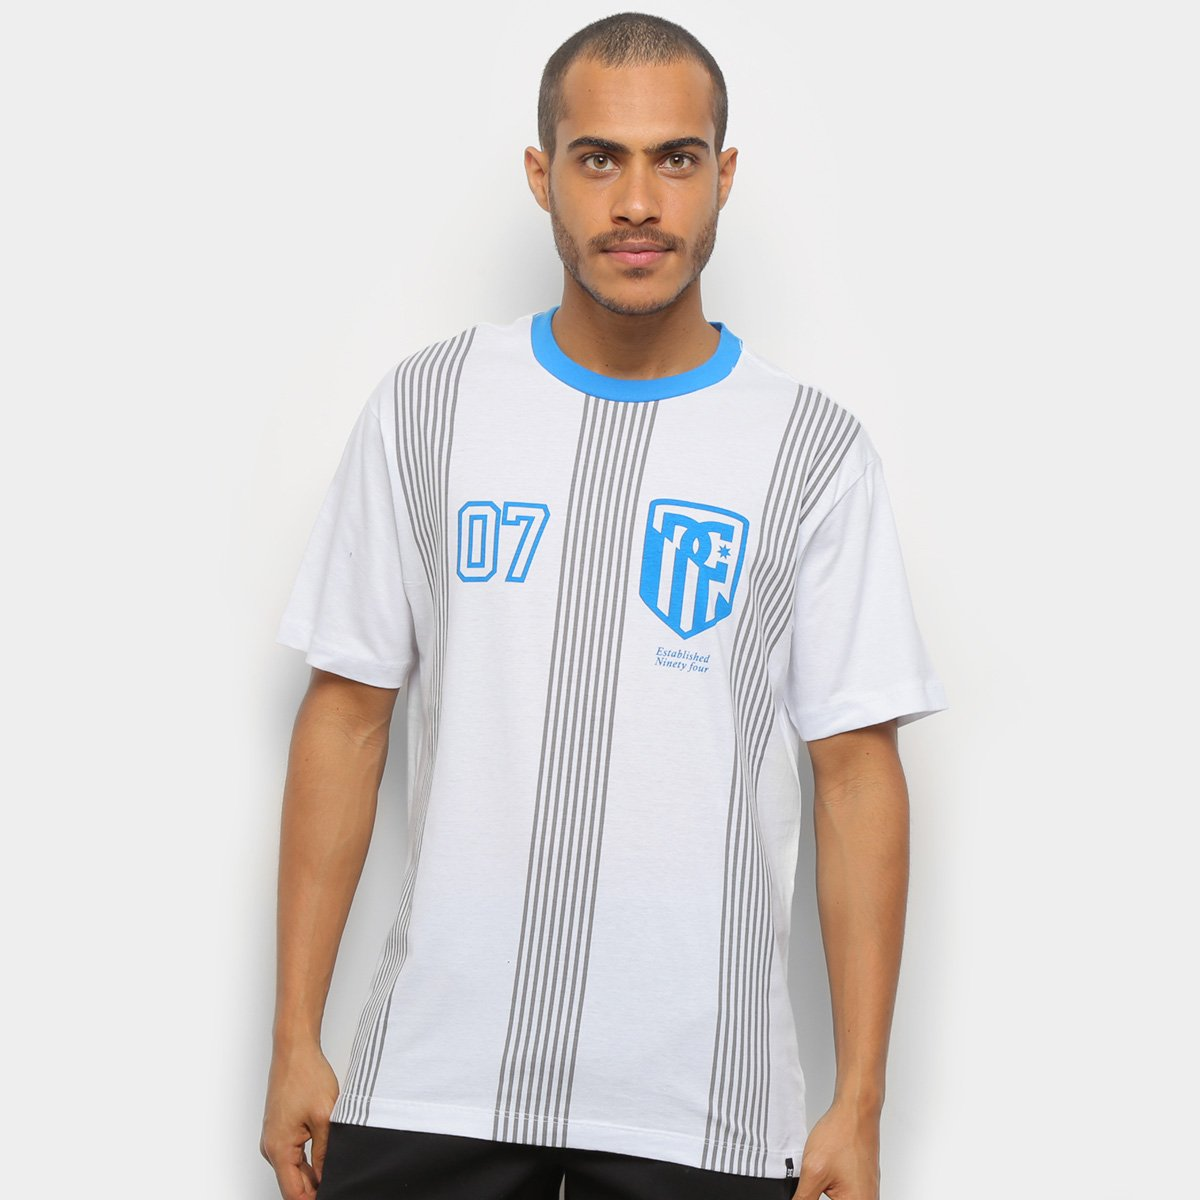 Camiseta DC Shoes Especial Redcrest Masculina